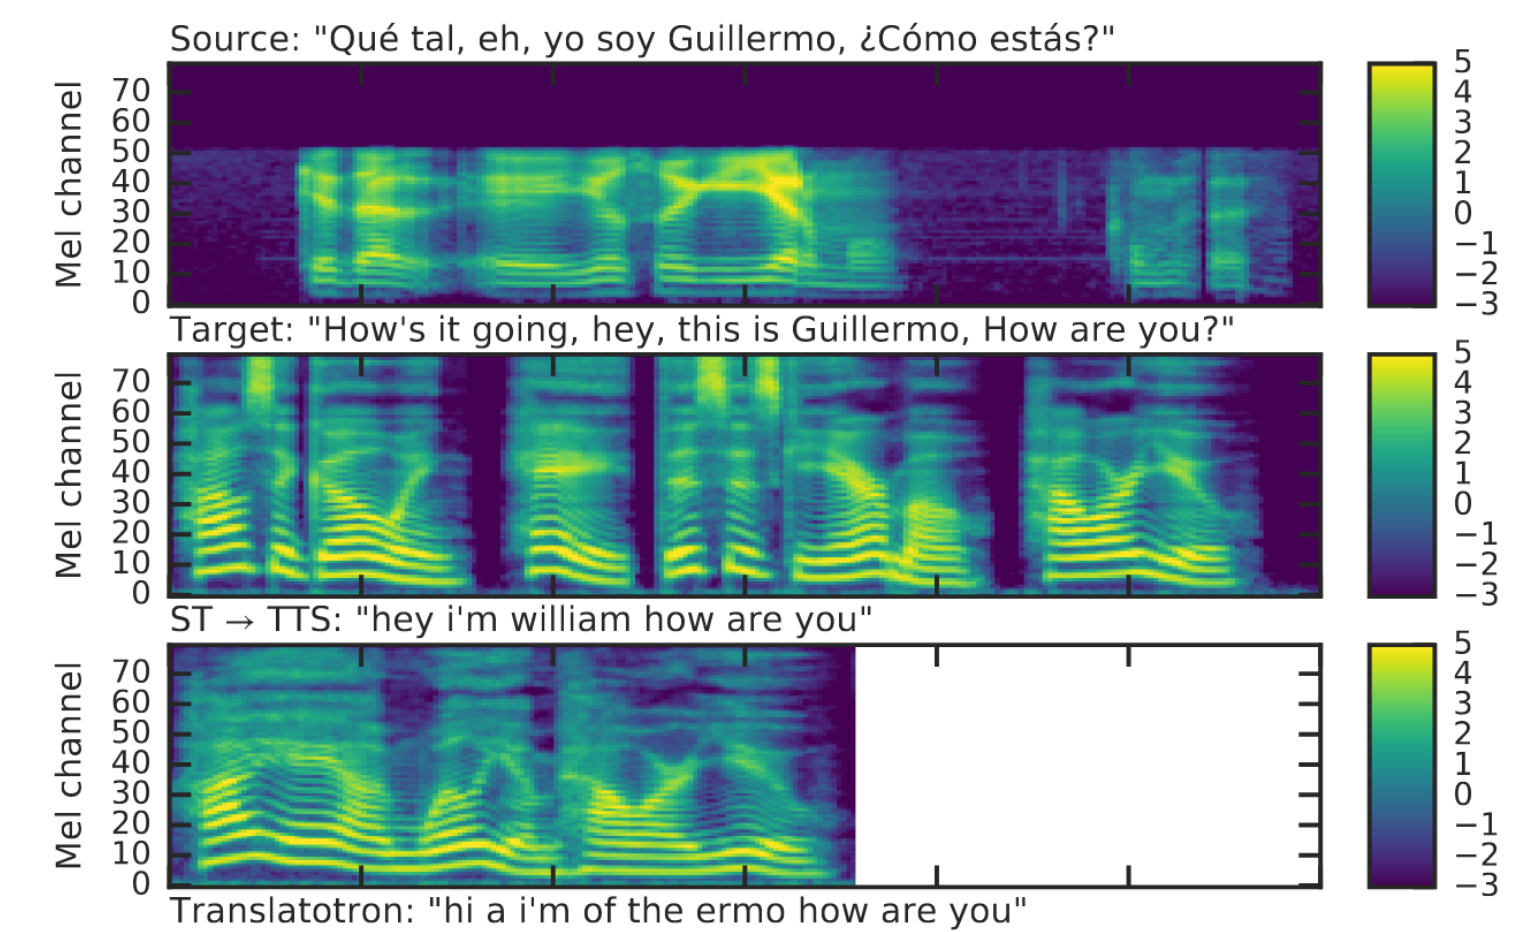 Google's Translatotron converts one spoken language to another, no text involved